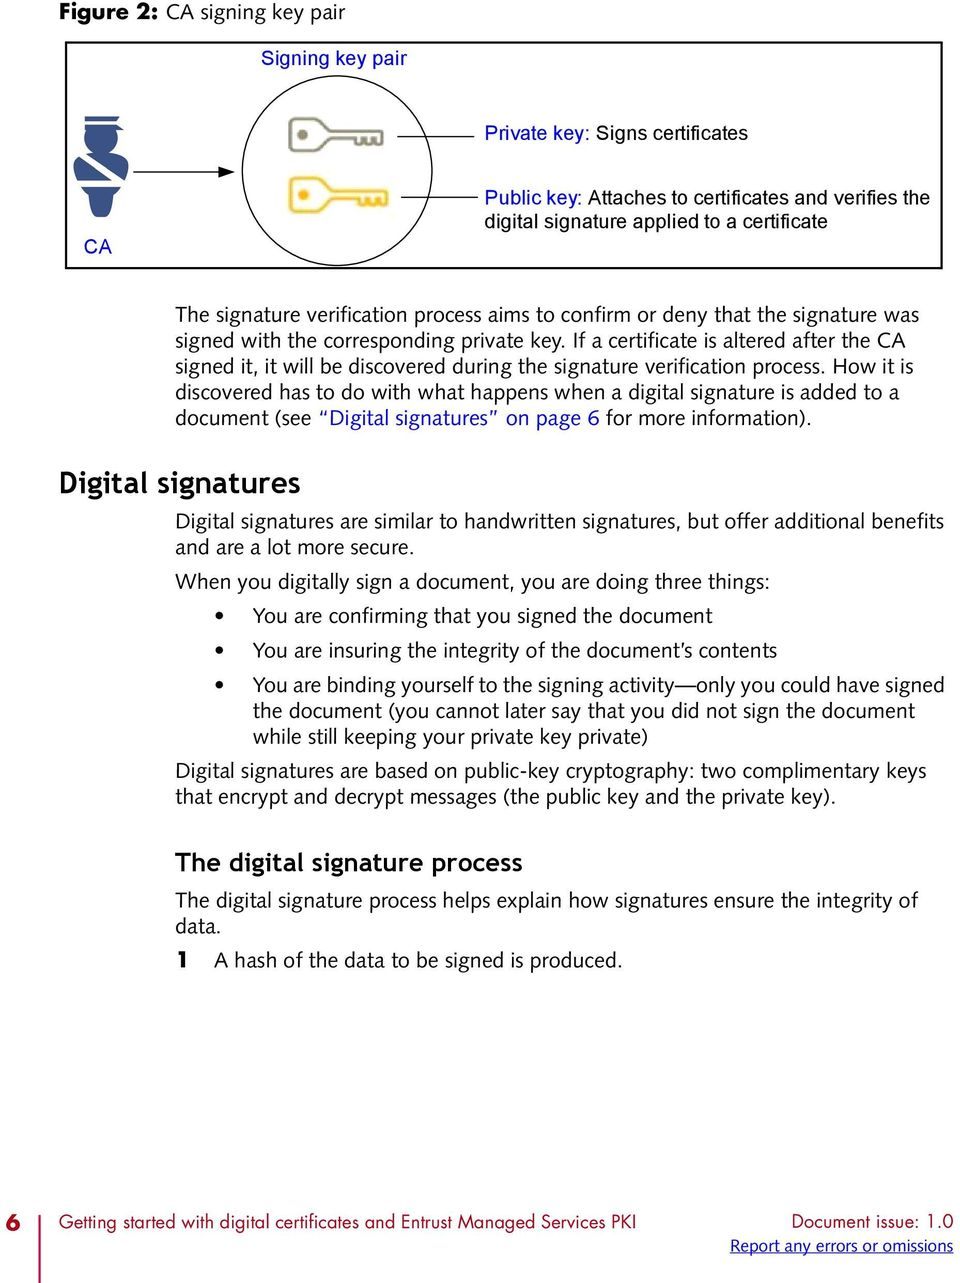 If a certificate is altered after the CA signed it, it will be discovered during the signature verification process.